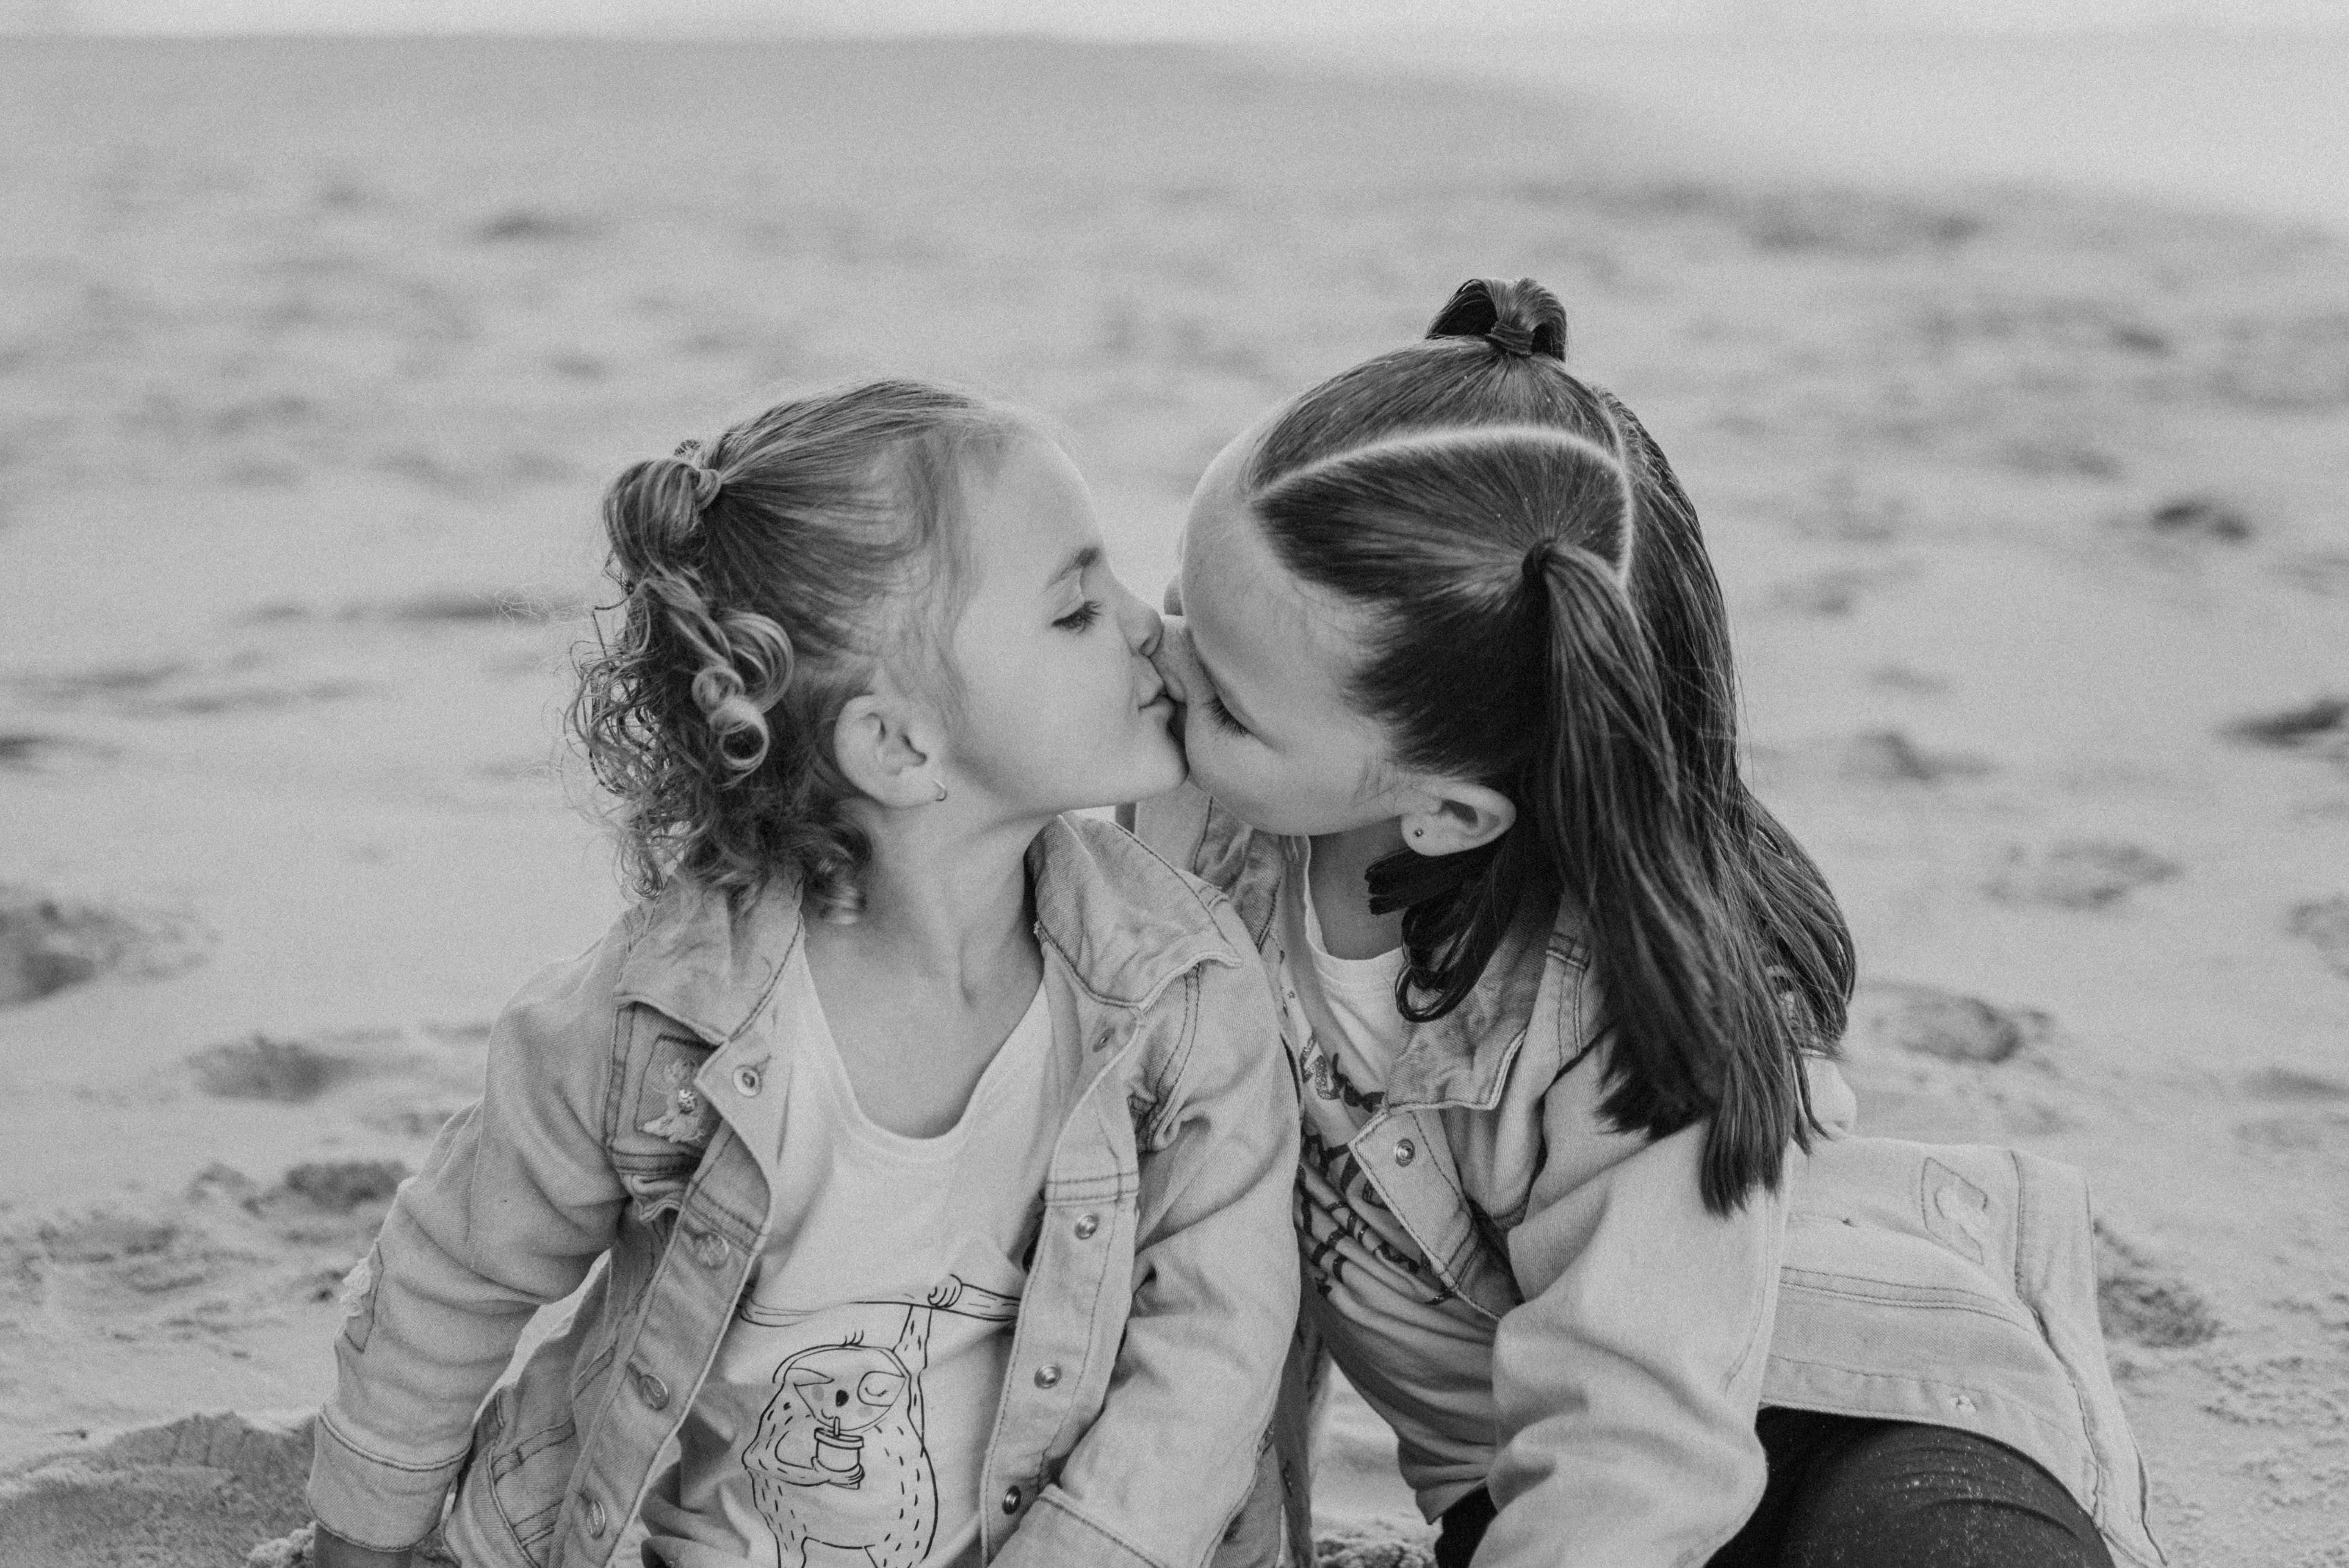 When you have so many kids, Family Photos Are Important because they capture your growth. Newcastle Beach